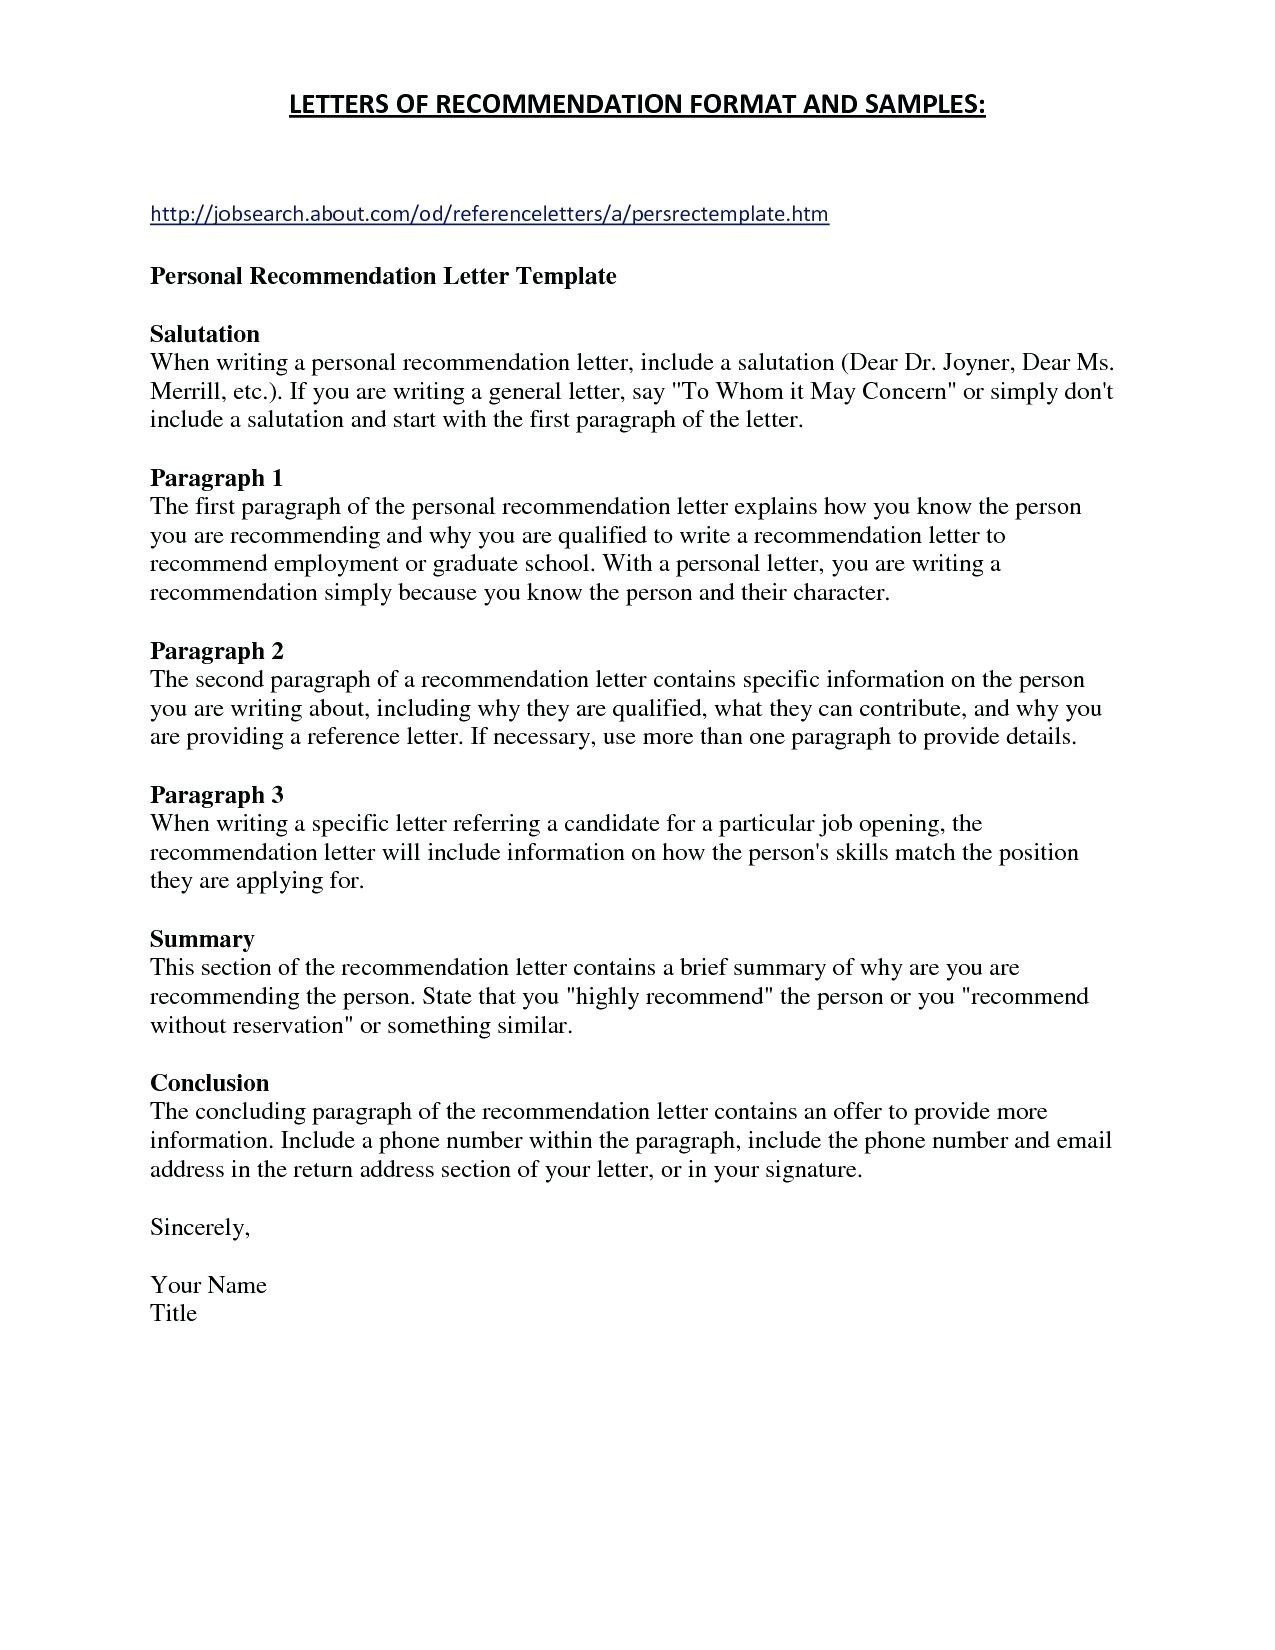 reference request letter template example-Sample Reference Letter for A Job Inspirationa Reference Letter Samples Fresh Sample Professional Reference Letter 16-p